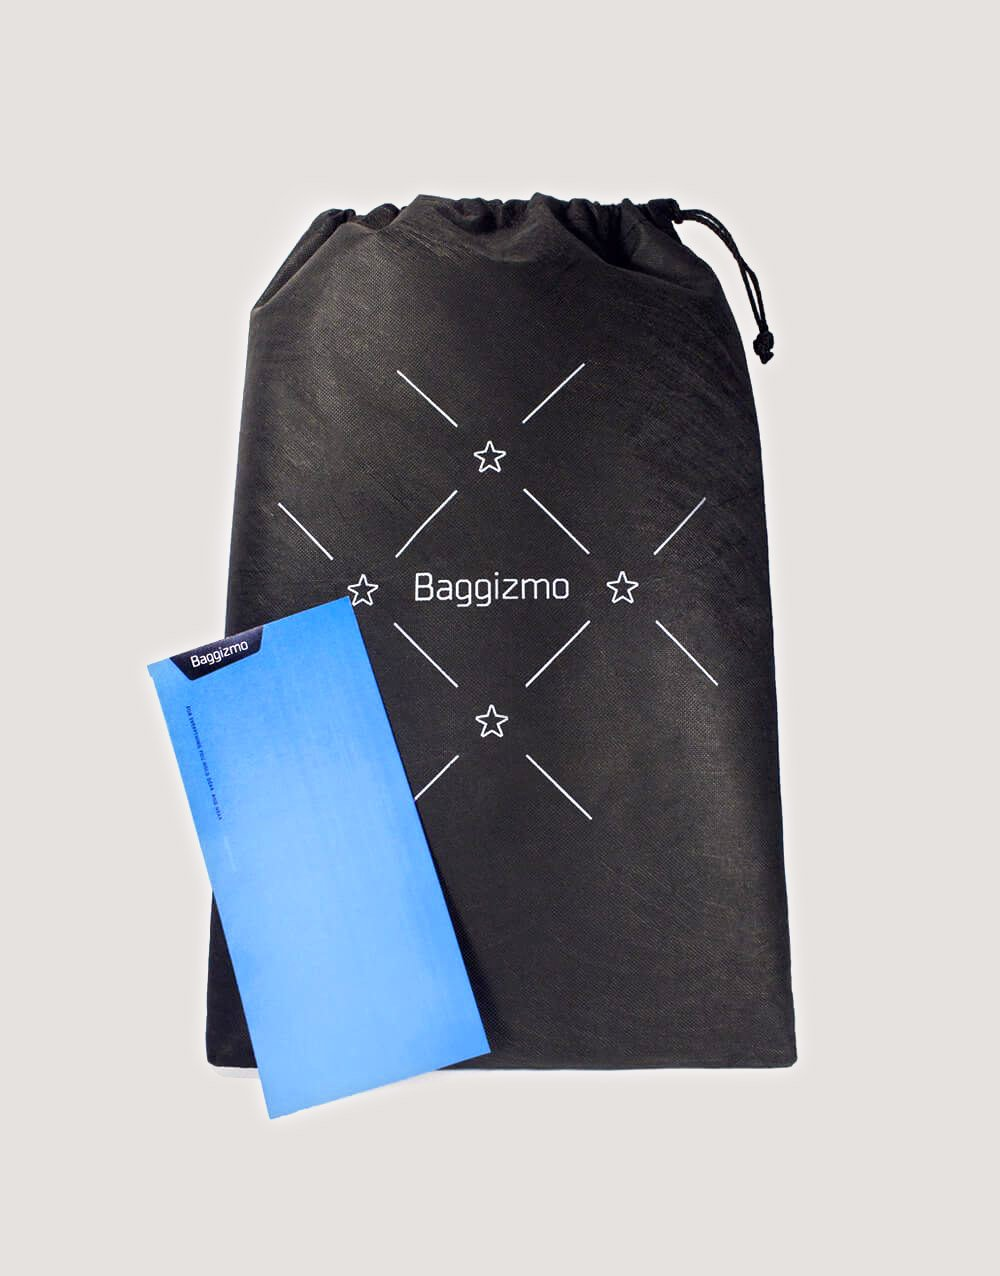 Baggizmo bag gift bag and card